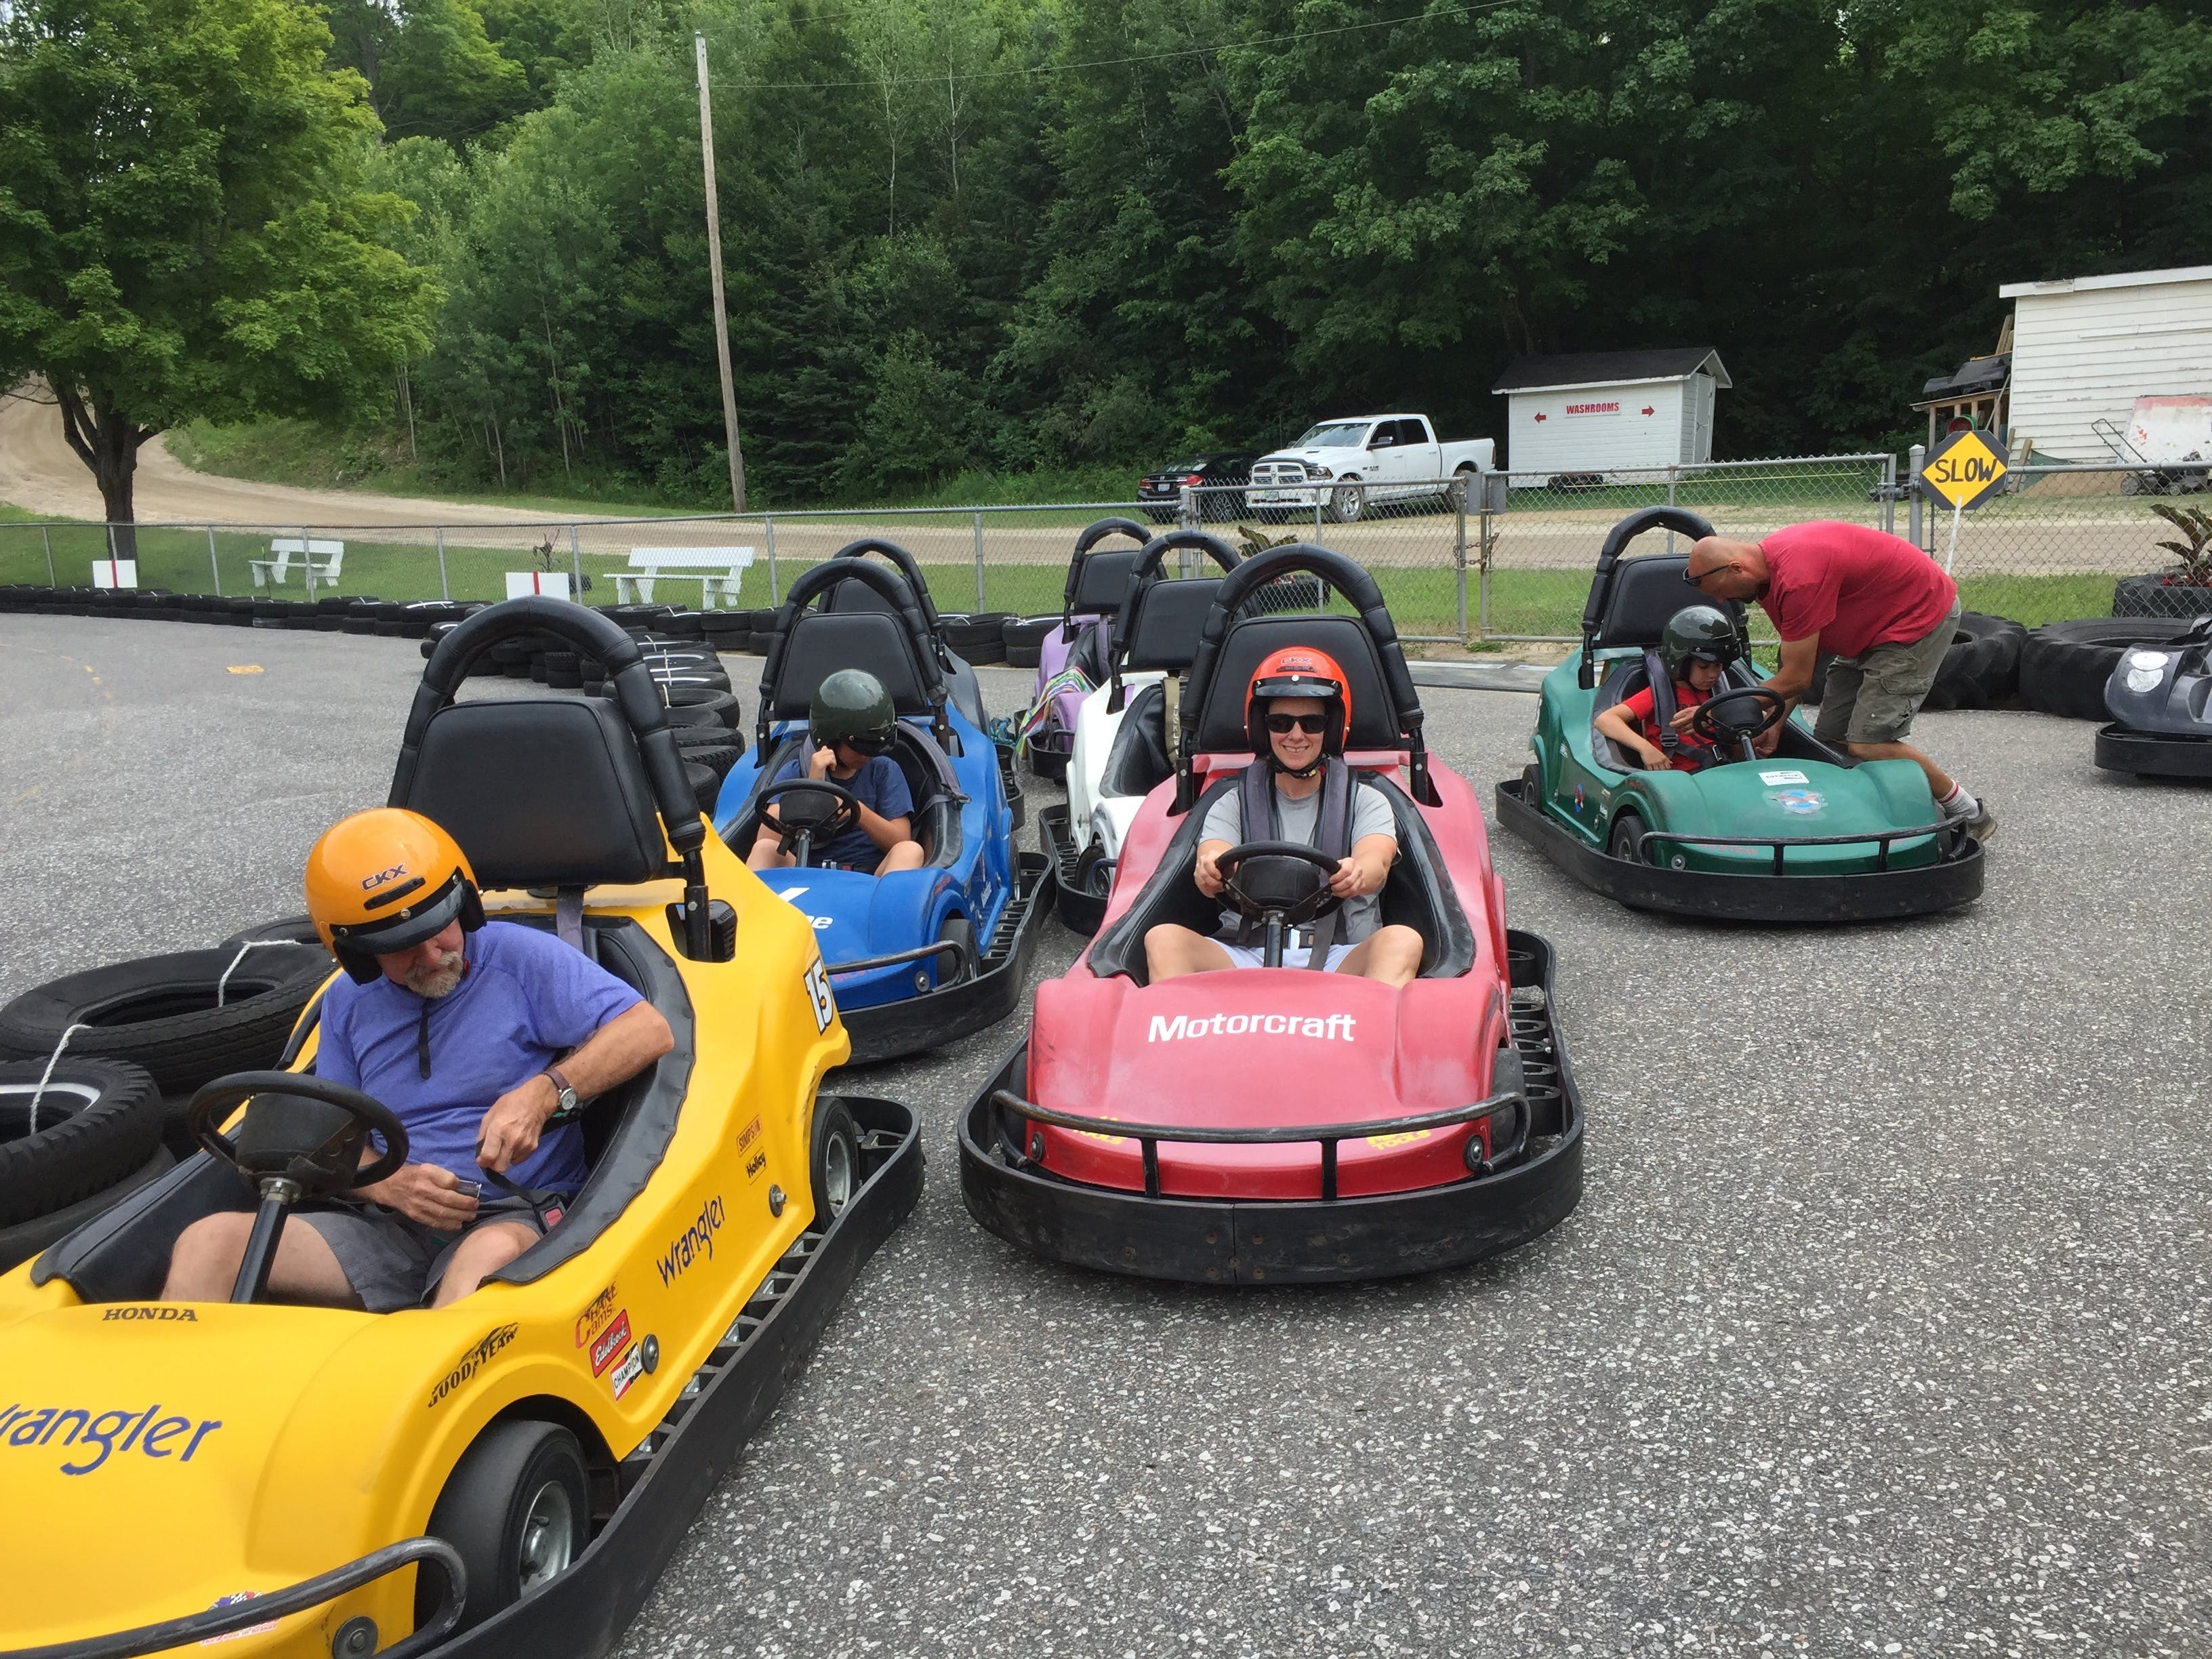 Free stock photo of go carts, Race day at the cart track